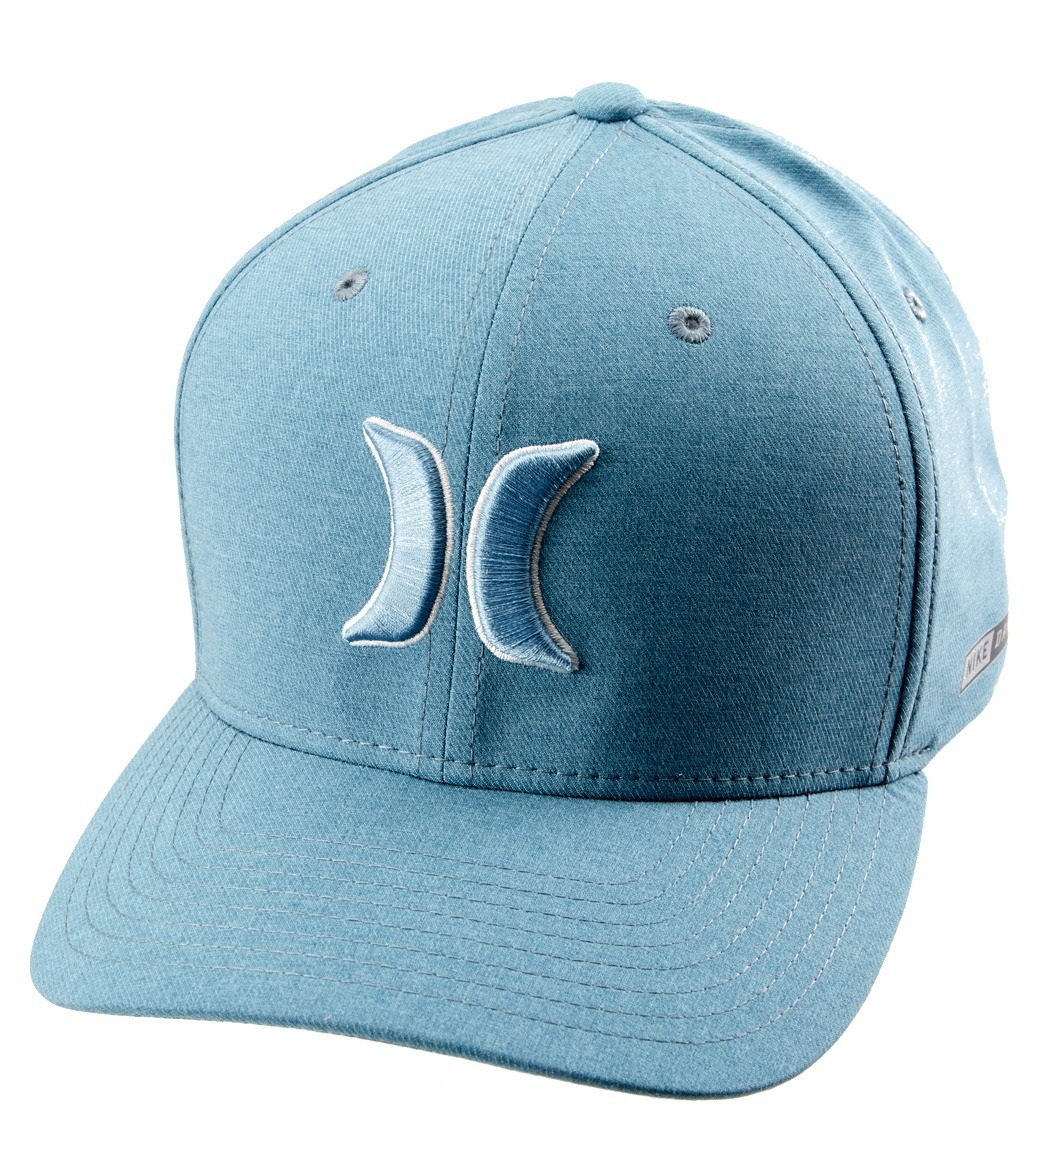 the latest 79ccc 8e15b ... Hurley Men s Dri-Fit Heather Hat. Share